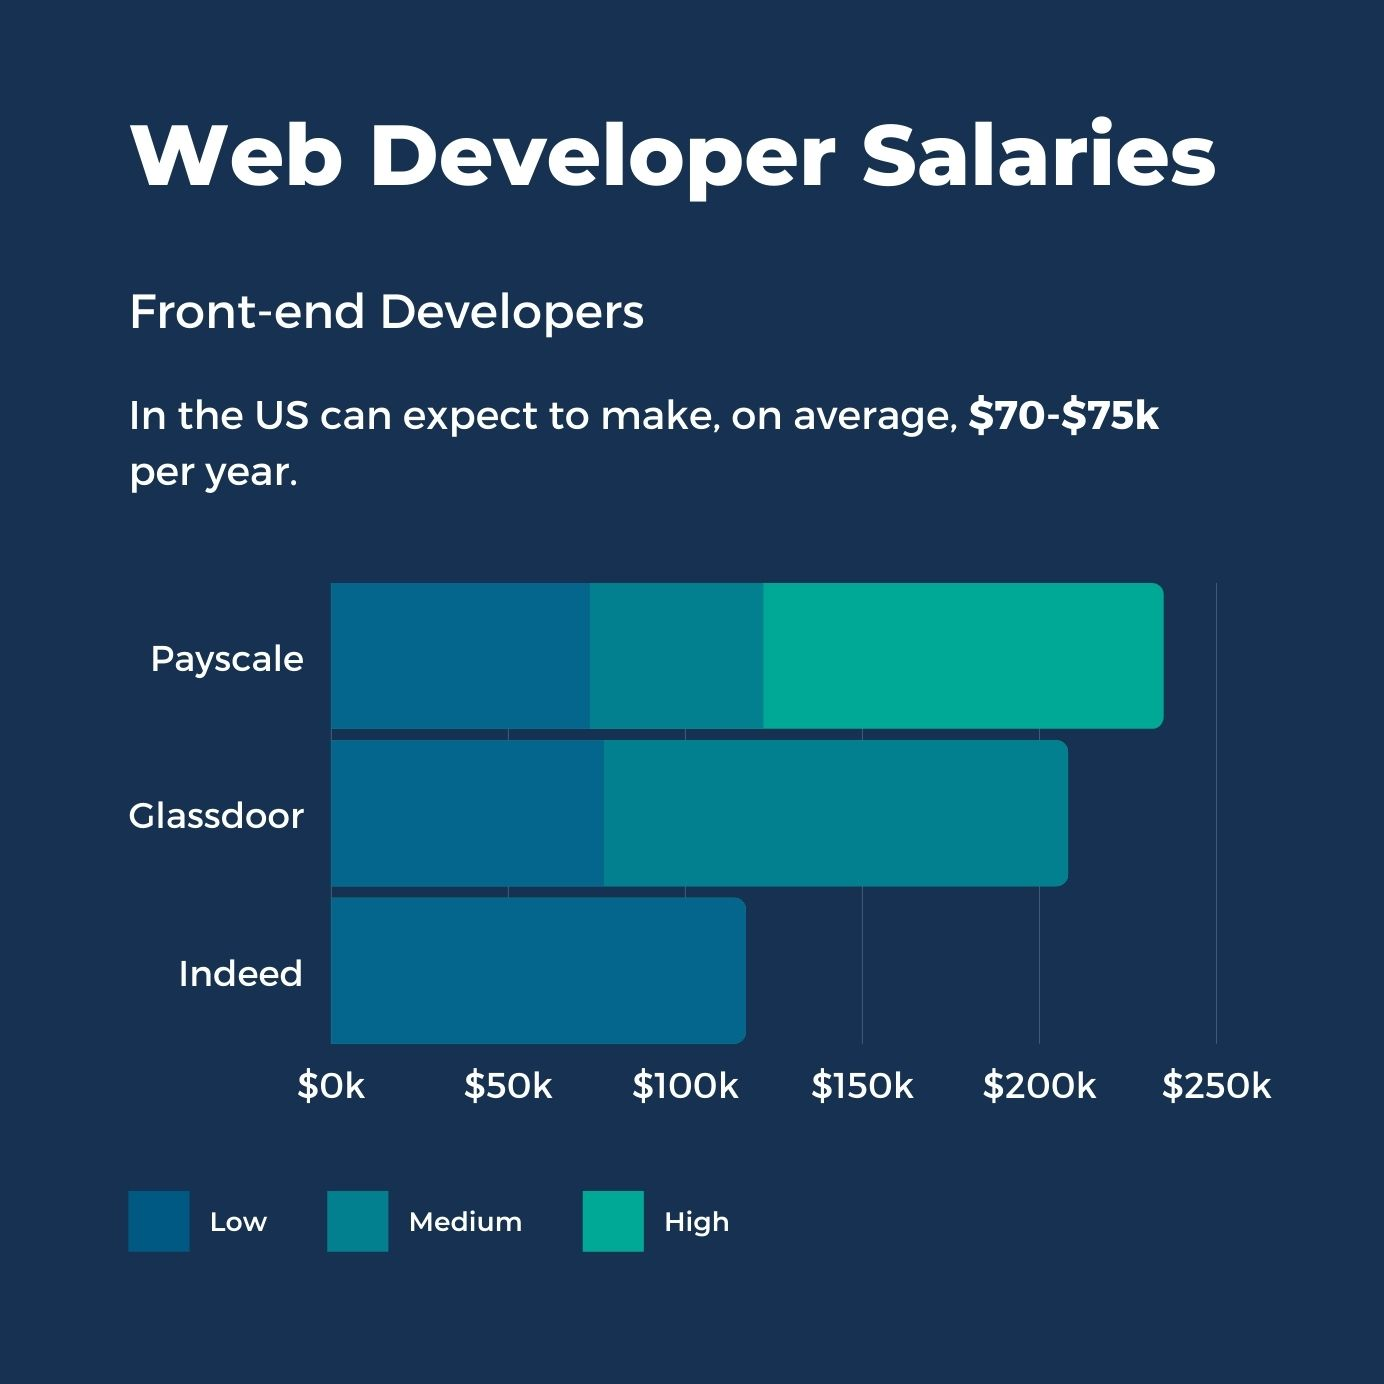 Front-end Developers Salaries